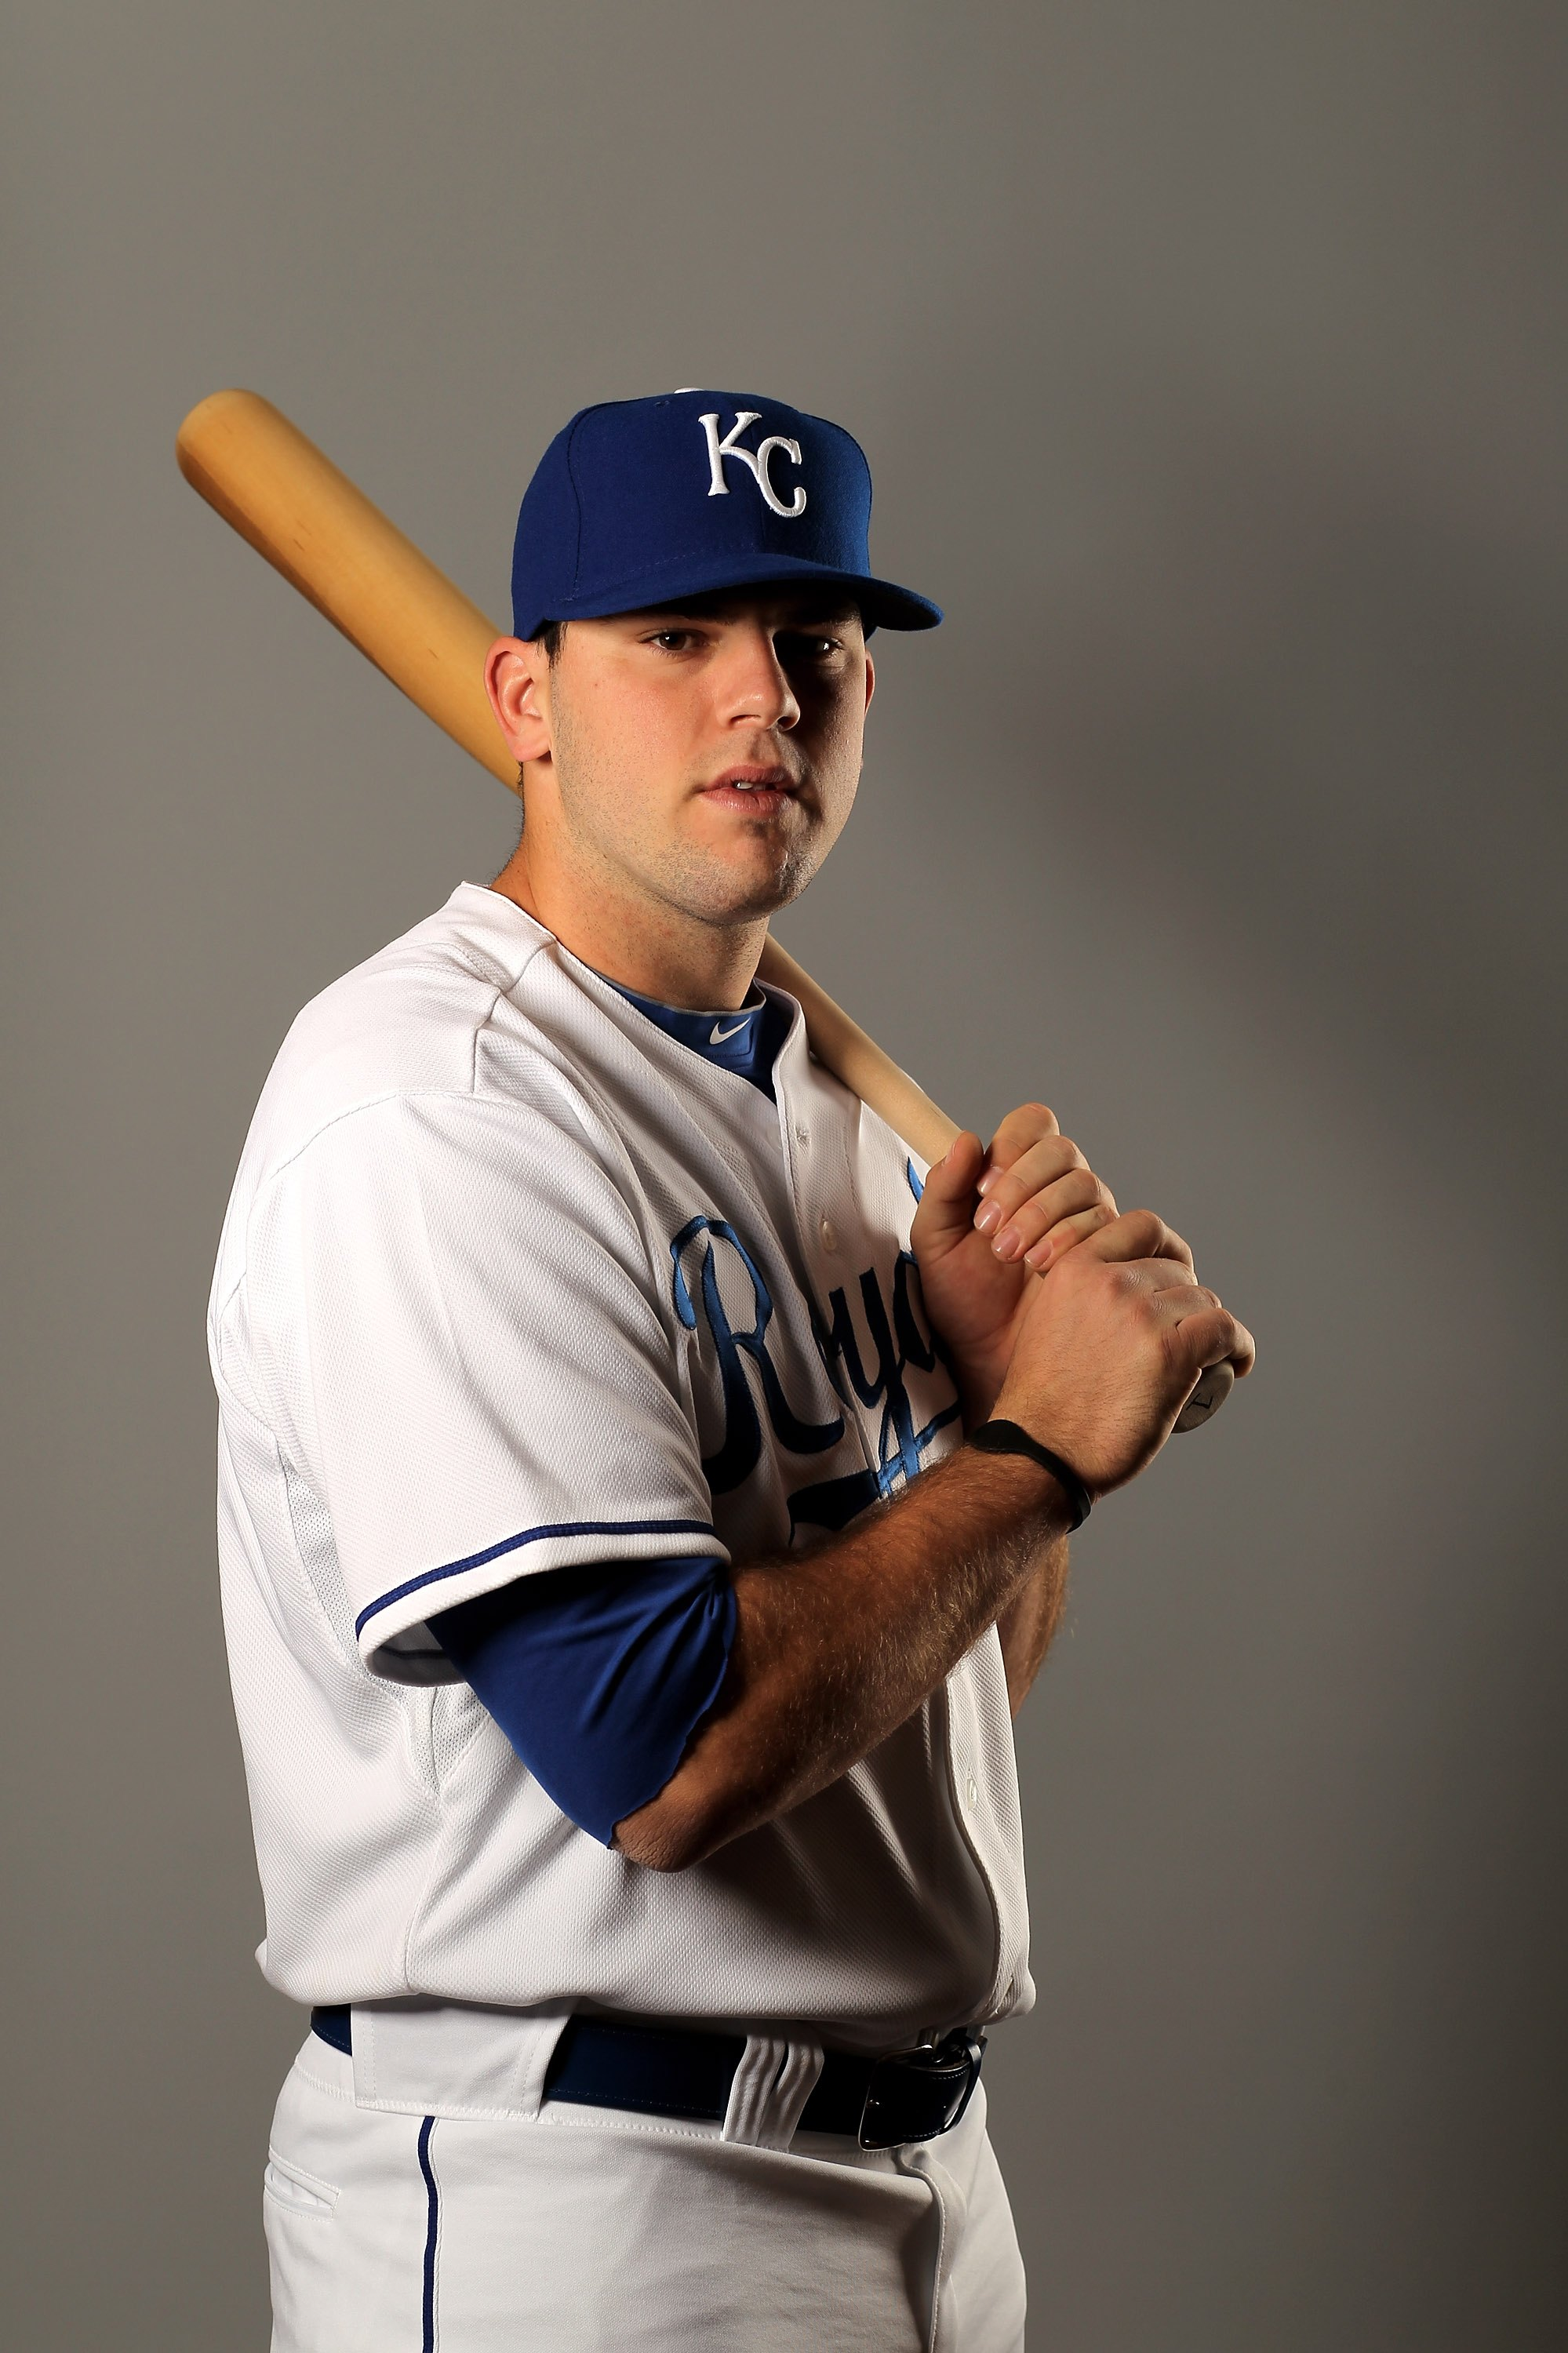 SURPRISE, AZ - FEBRUARY 26:  Mike Moustakas of the Kansas City Royals poses during photo media day at the Royals spring training complex on February 26, 2010 in Surprise, Arizona.  (Photo by Ezra Shaw/Getty Images)